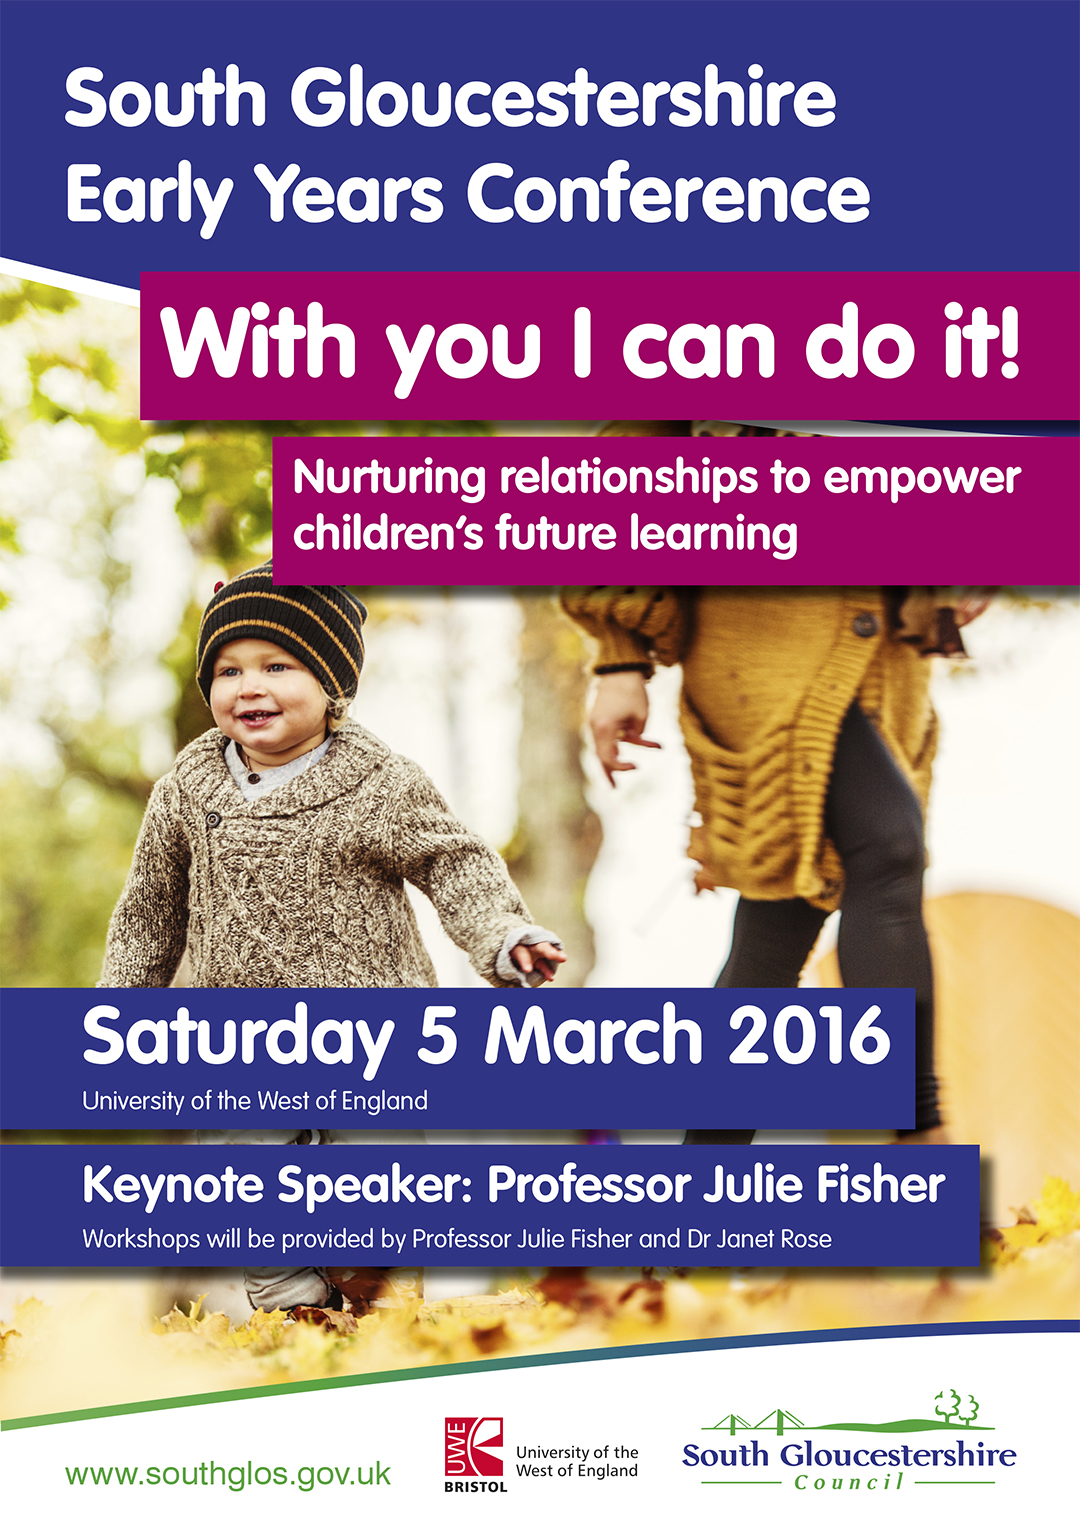 south gloucestershire Early_Years_conference_flyer